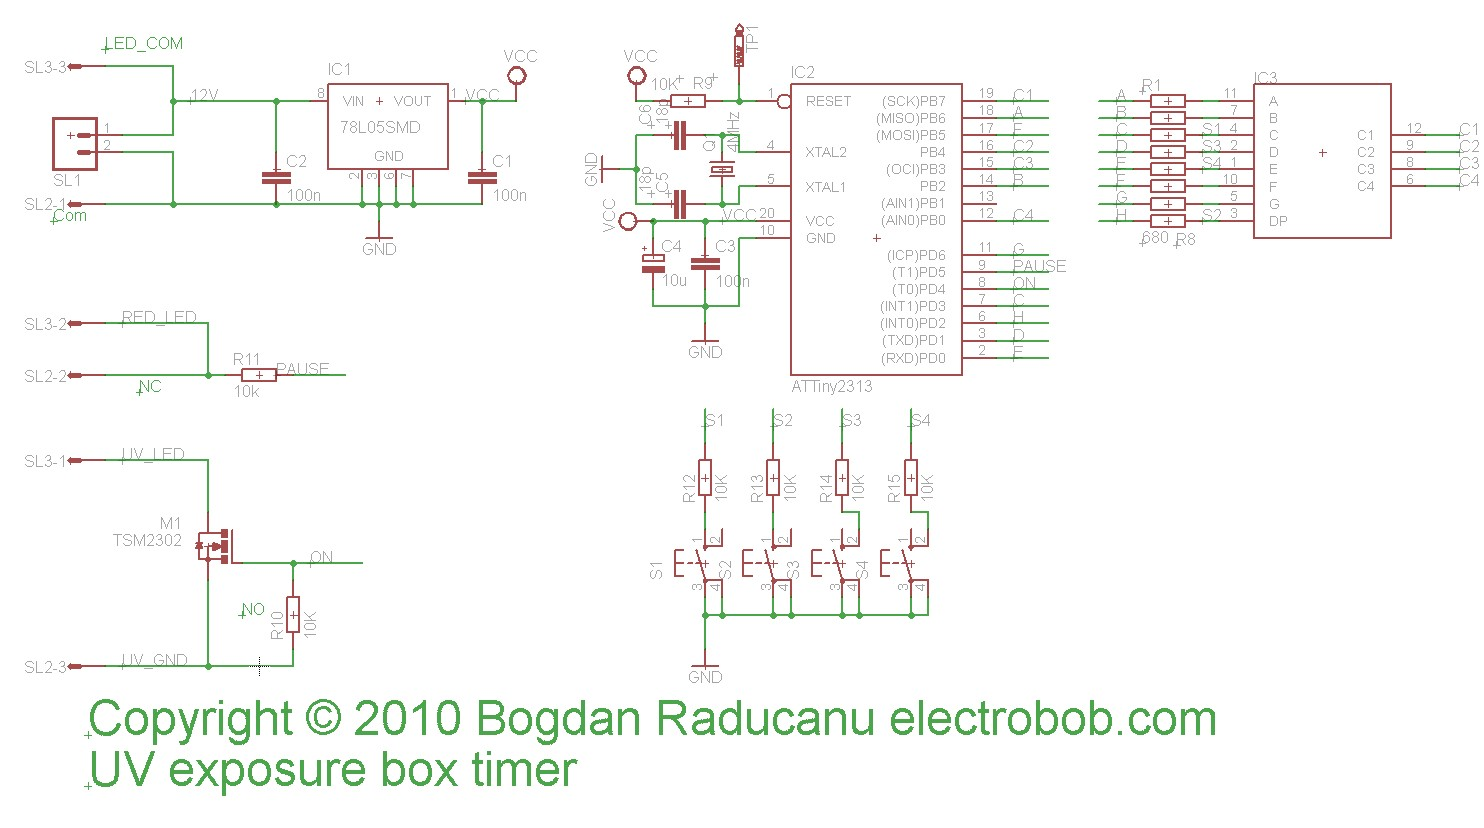 Led Uv Exposure Box Electronics Lab 5 Circuit Diagram Schematic The Connection Of Lid Switch And Arrays Is Shown Below